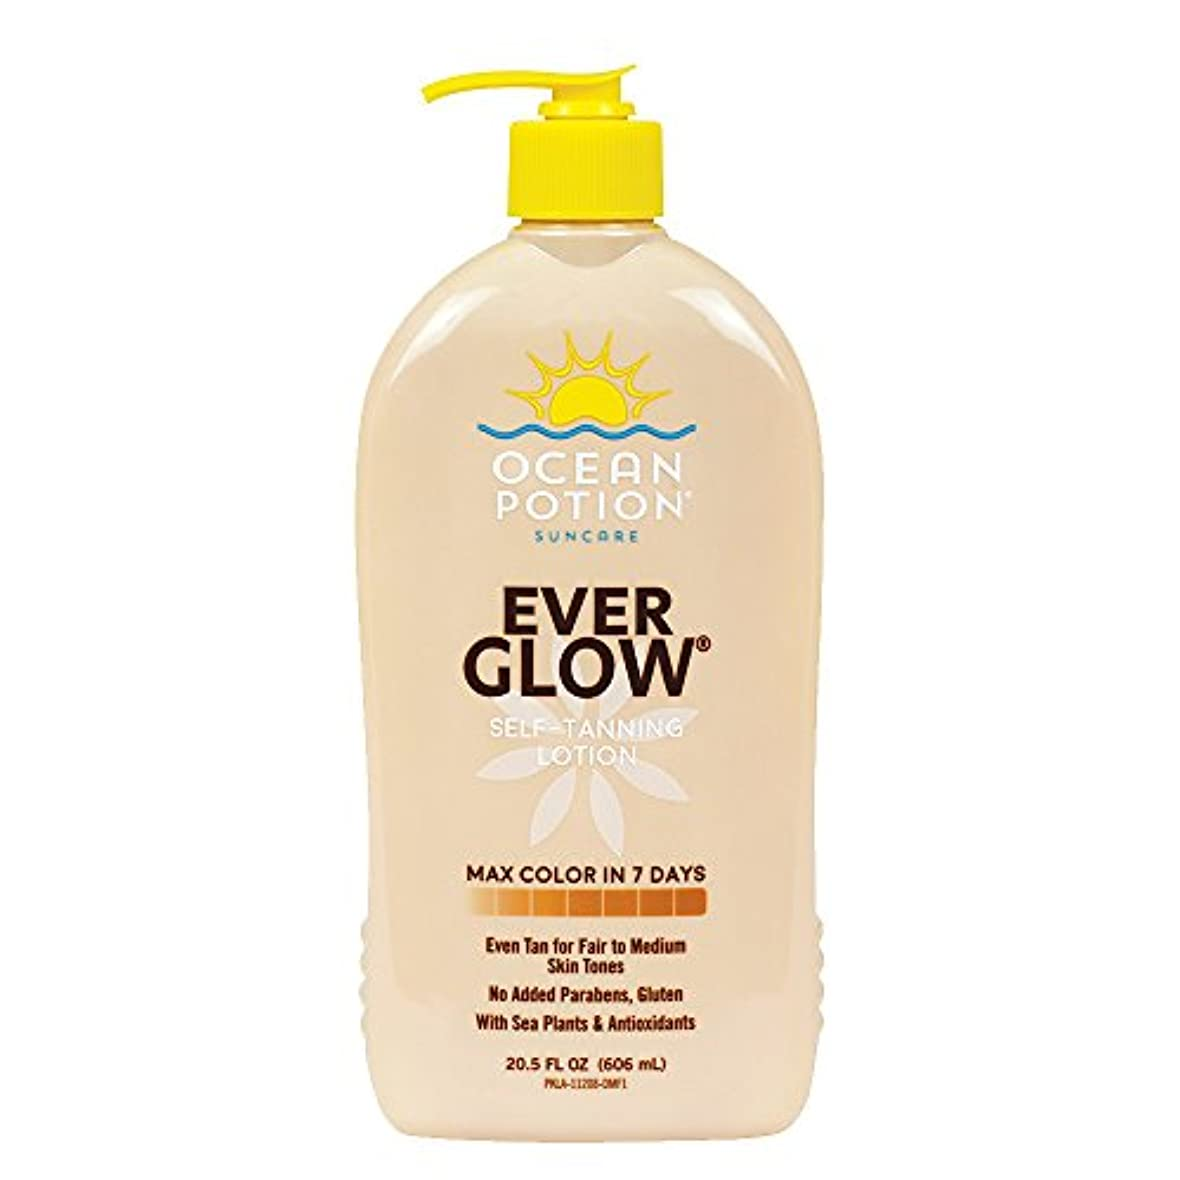 Ocean Potion Ever Glow Self-Tanning Lotion 20.5 fl.oz